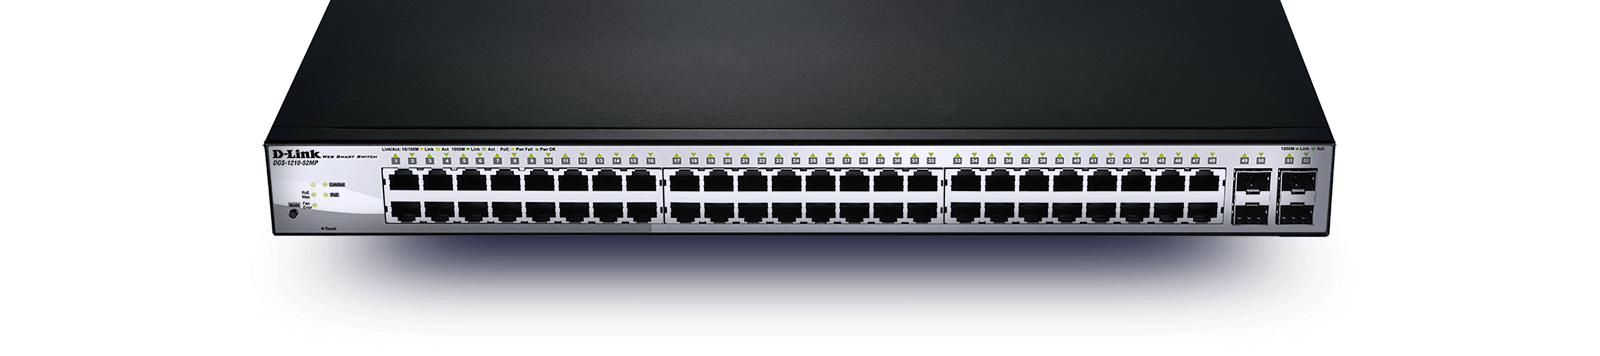 D-Link Assist for DGS-1210 Smart Managed Gigabit Switches